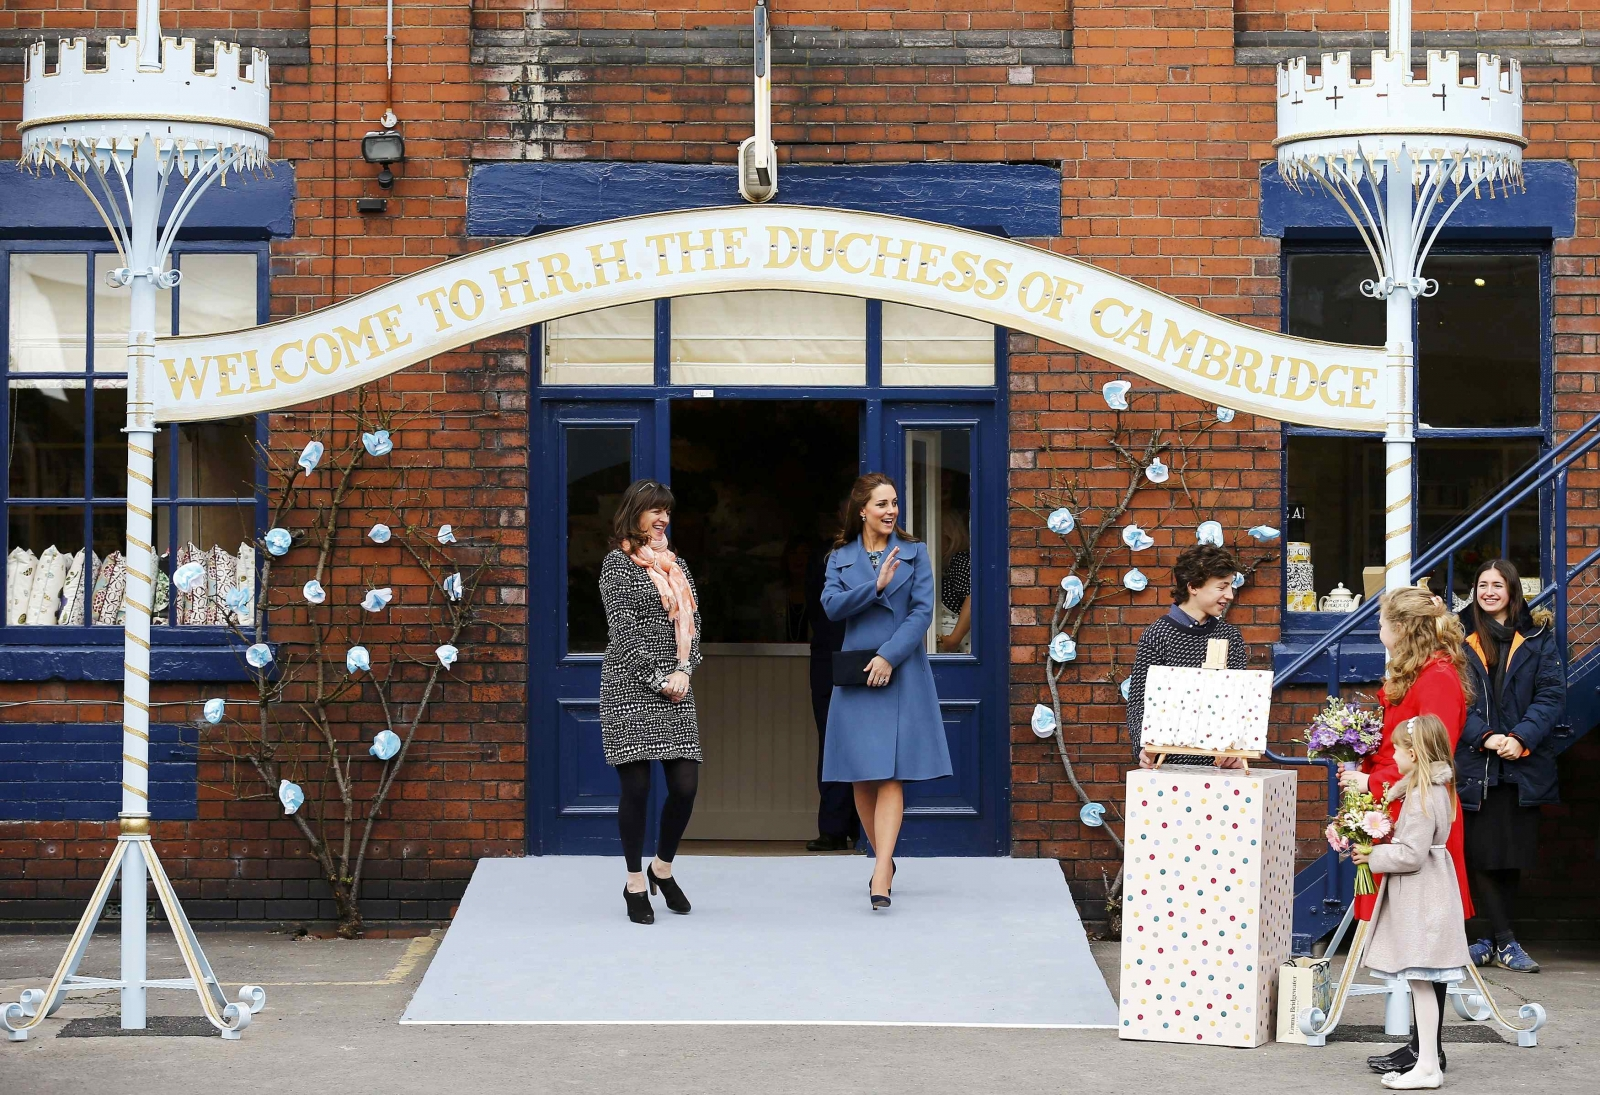 Kate Middleton gets hands on during Emma Bridewater visit